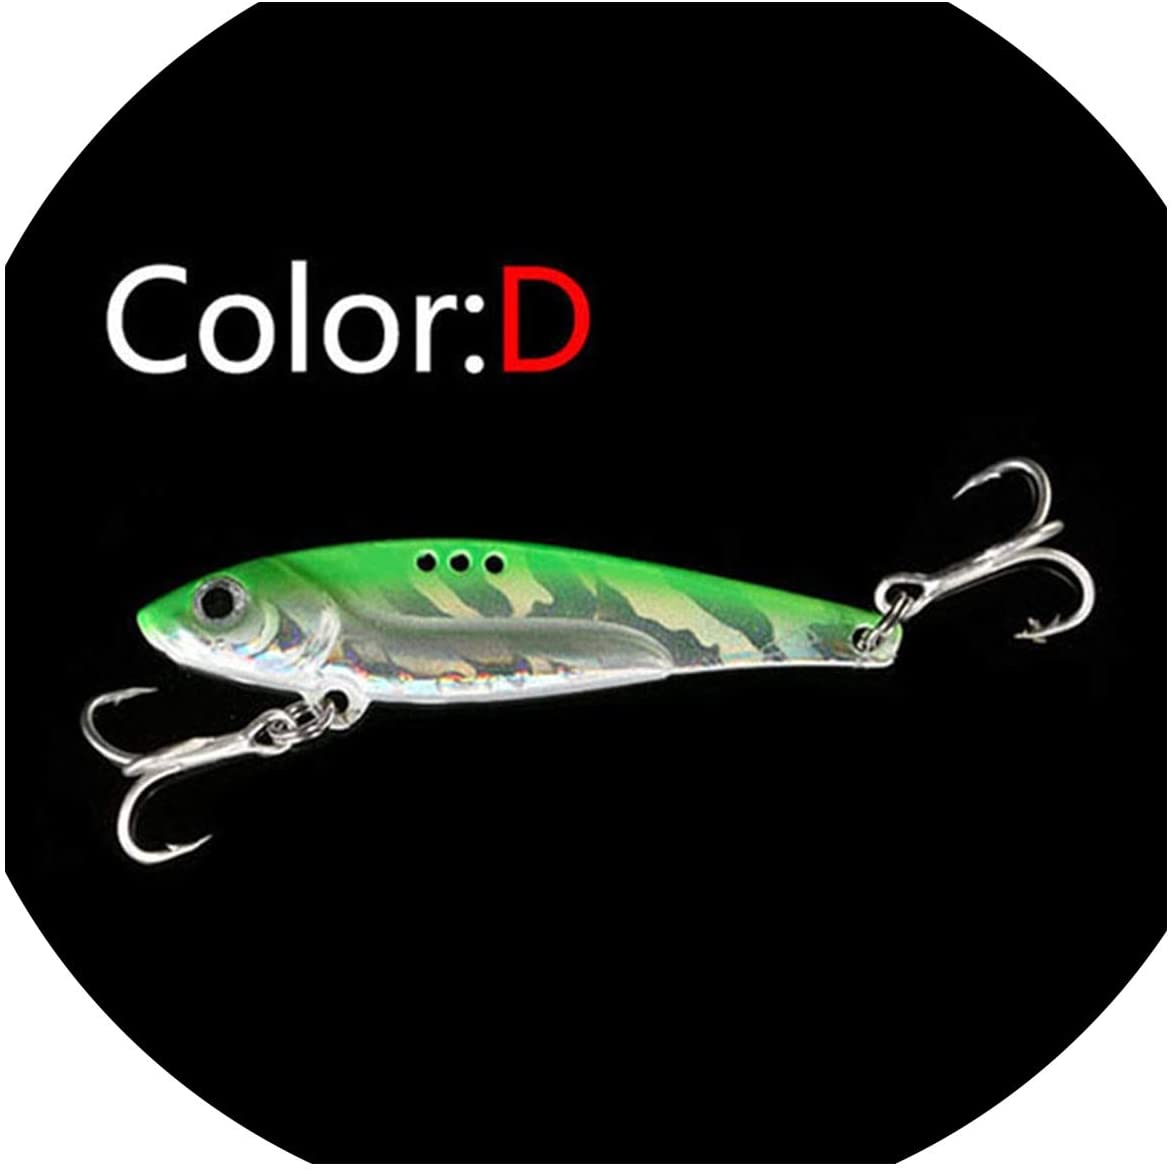 OH WHY Metal Laser VIB Fishing Lure 5g8g13g16g21g Fishing Tackle Crankbait Vibration Spoon Spinner Sinking Bait Tackle,D,5cm-8g